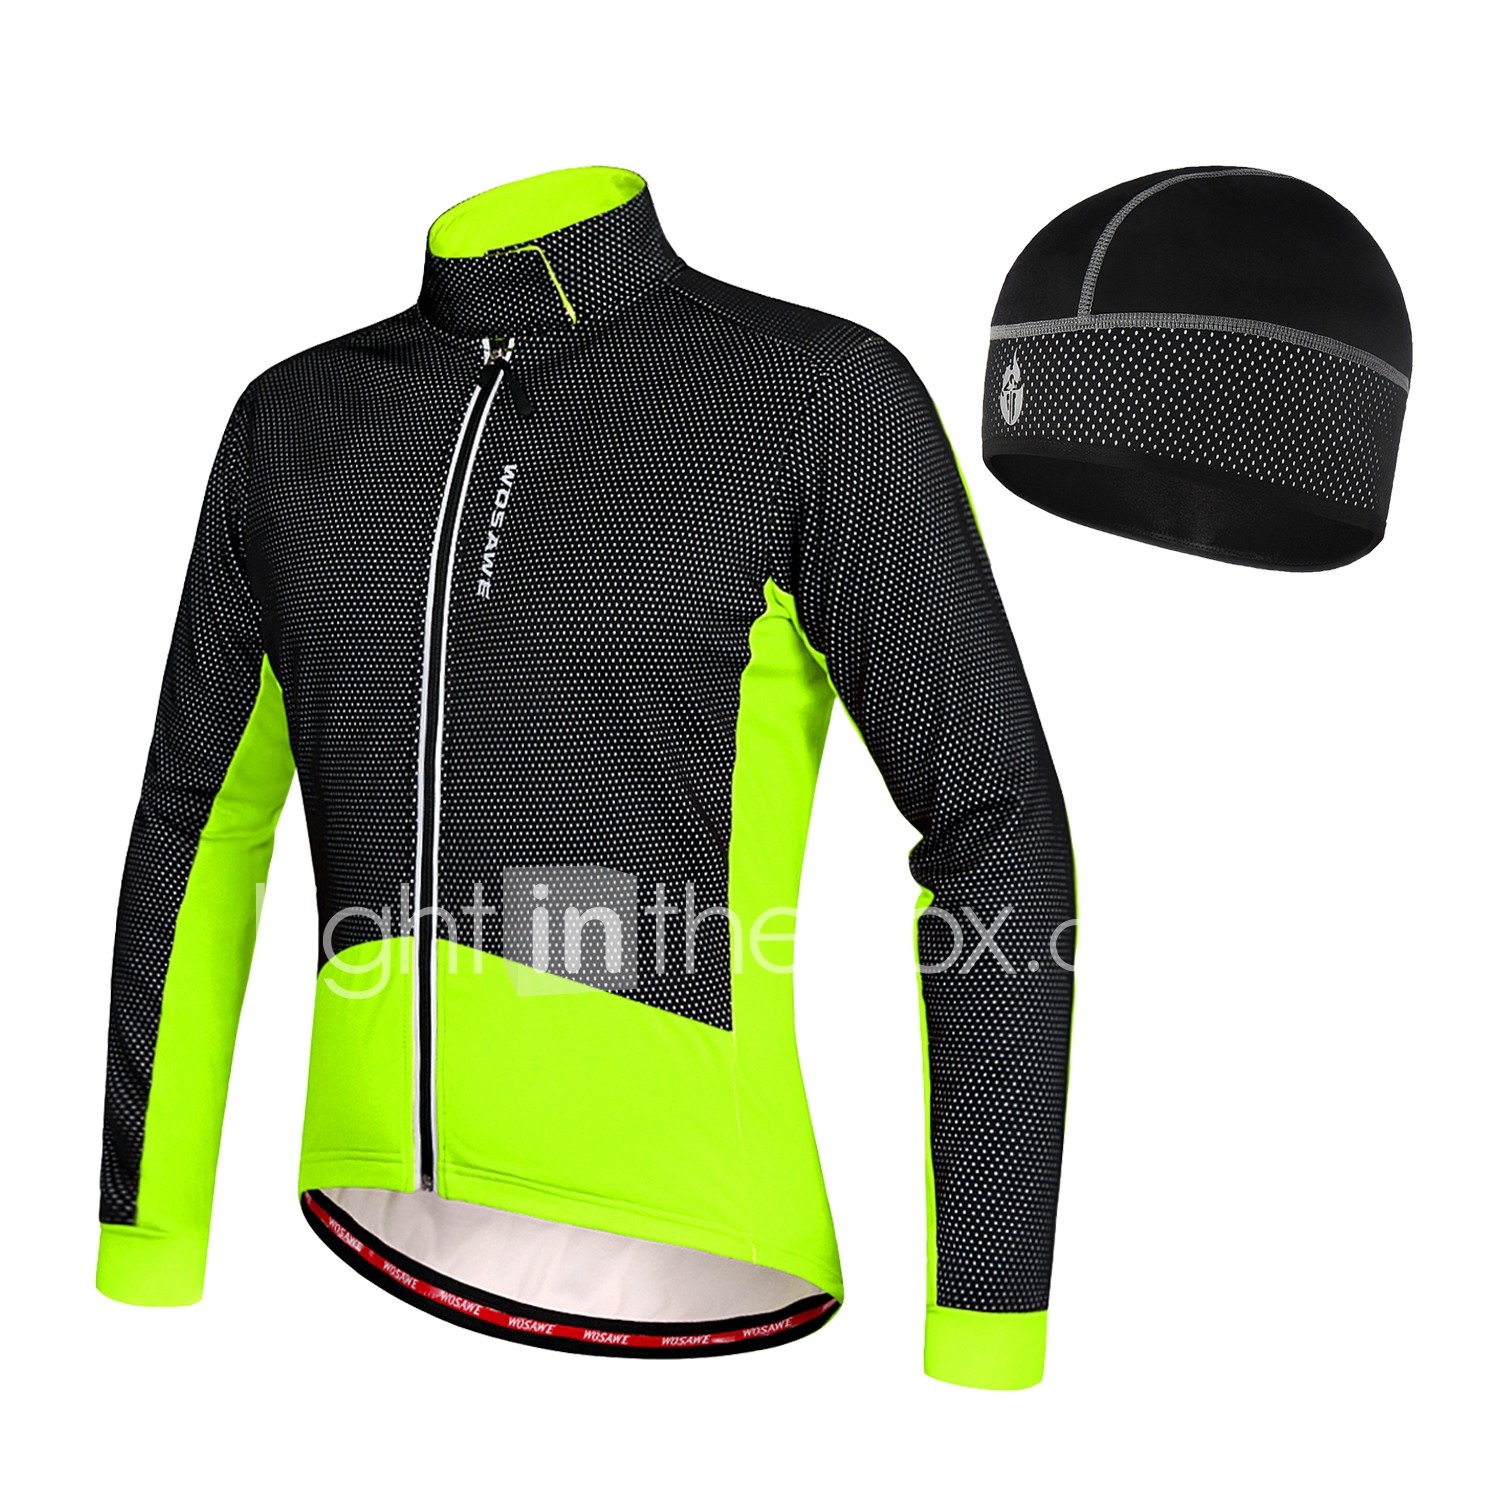 WOSAWE Men s Cycling Jacket Bike Winter Fleece Jacket Jersey Hat Thermal    Warm Fleece Lining Sports 291674341